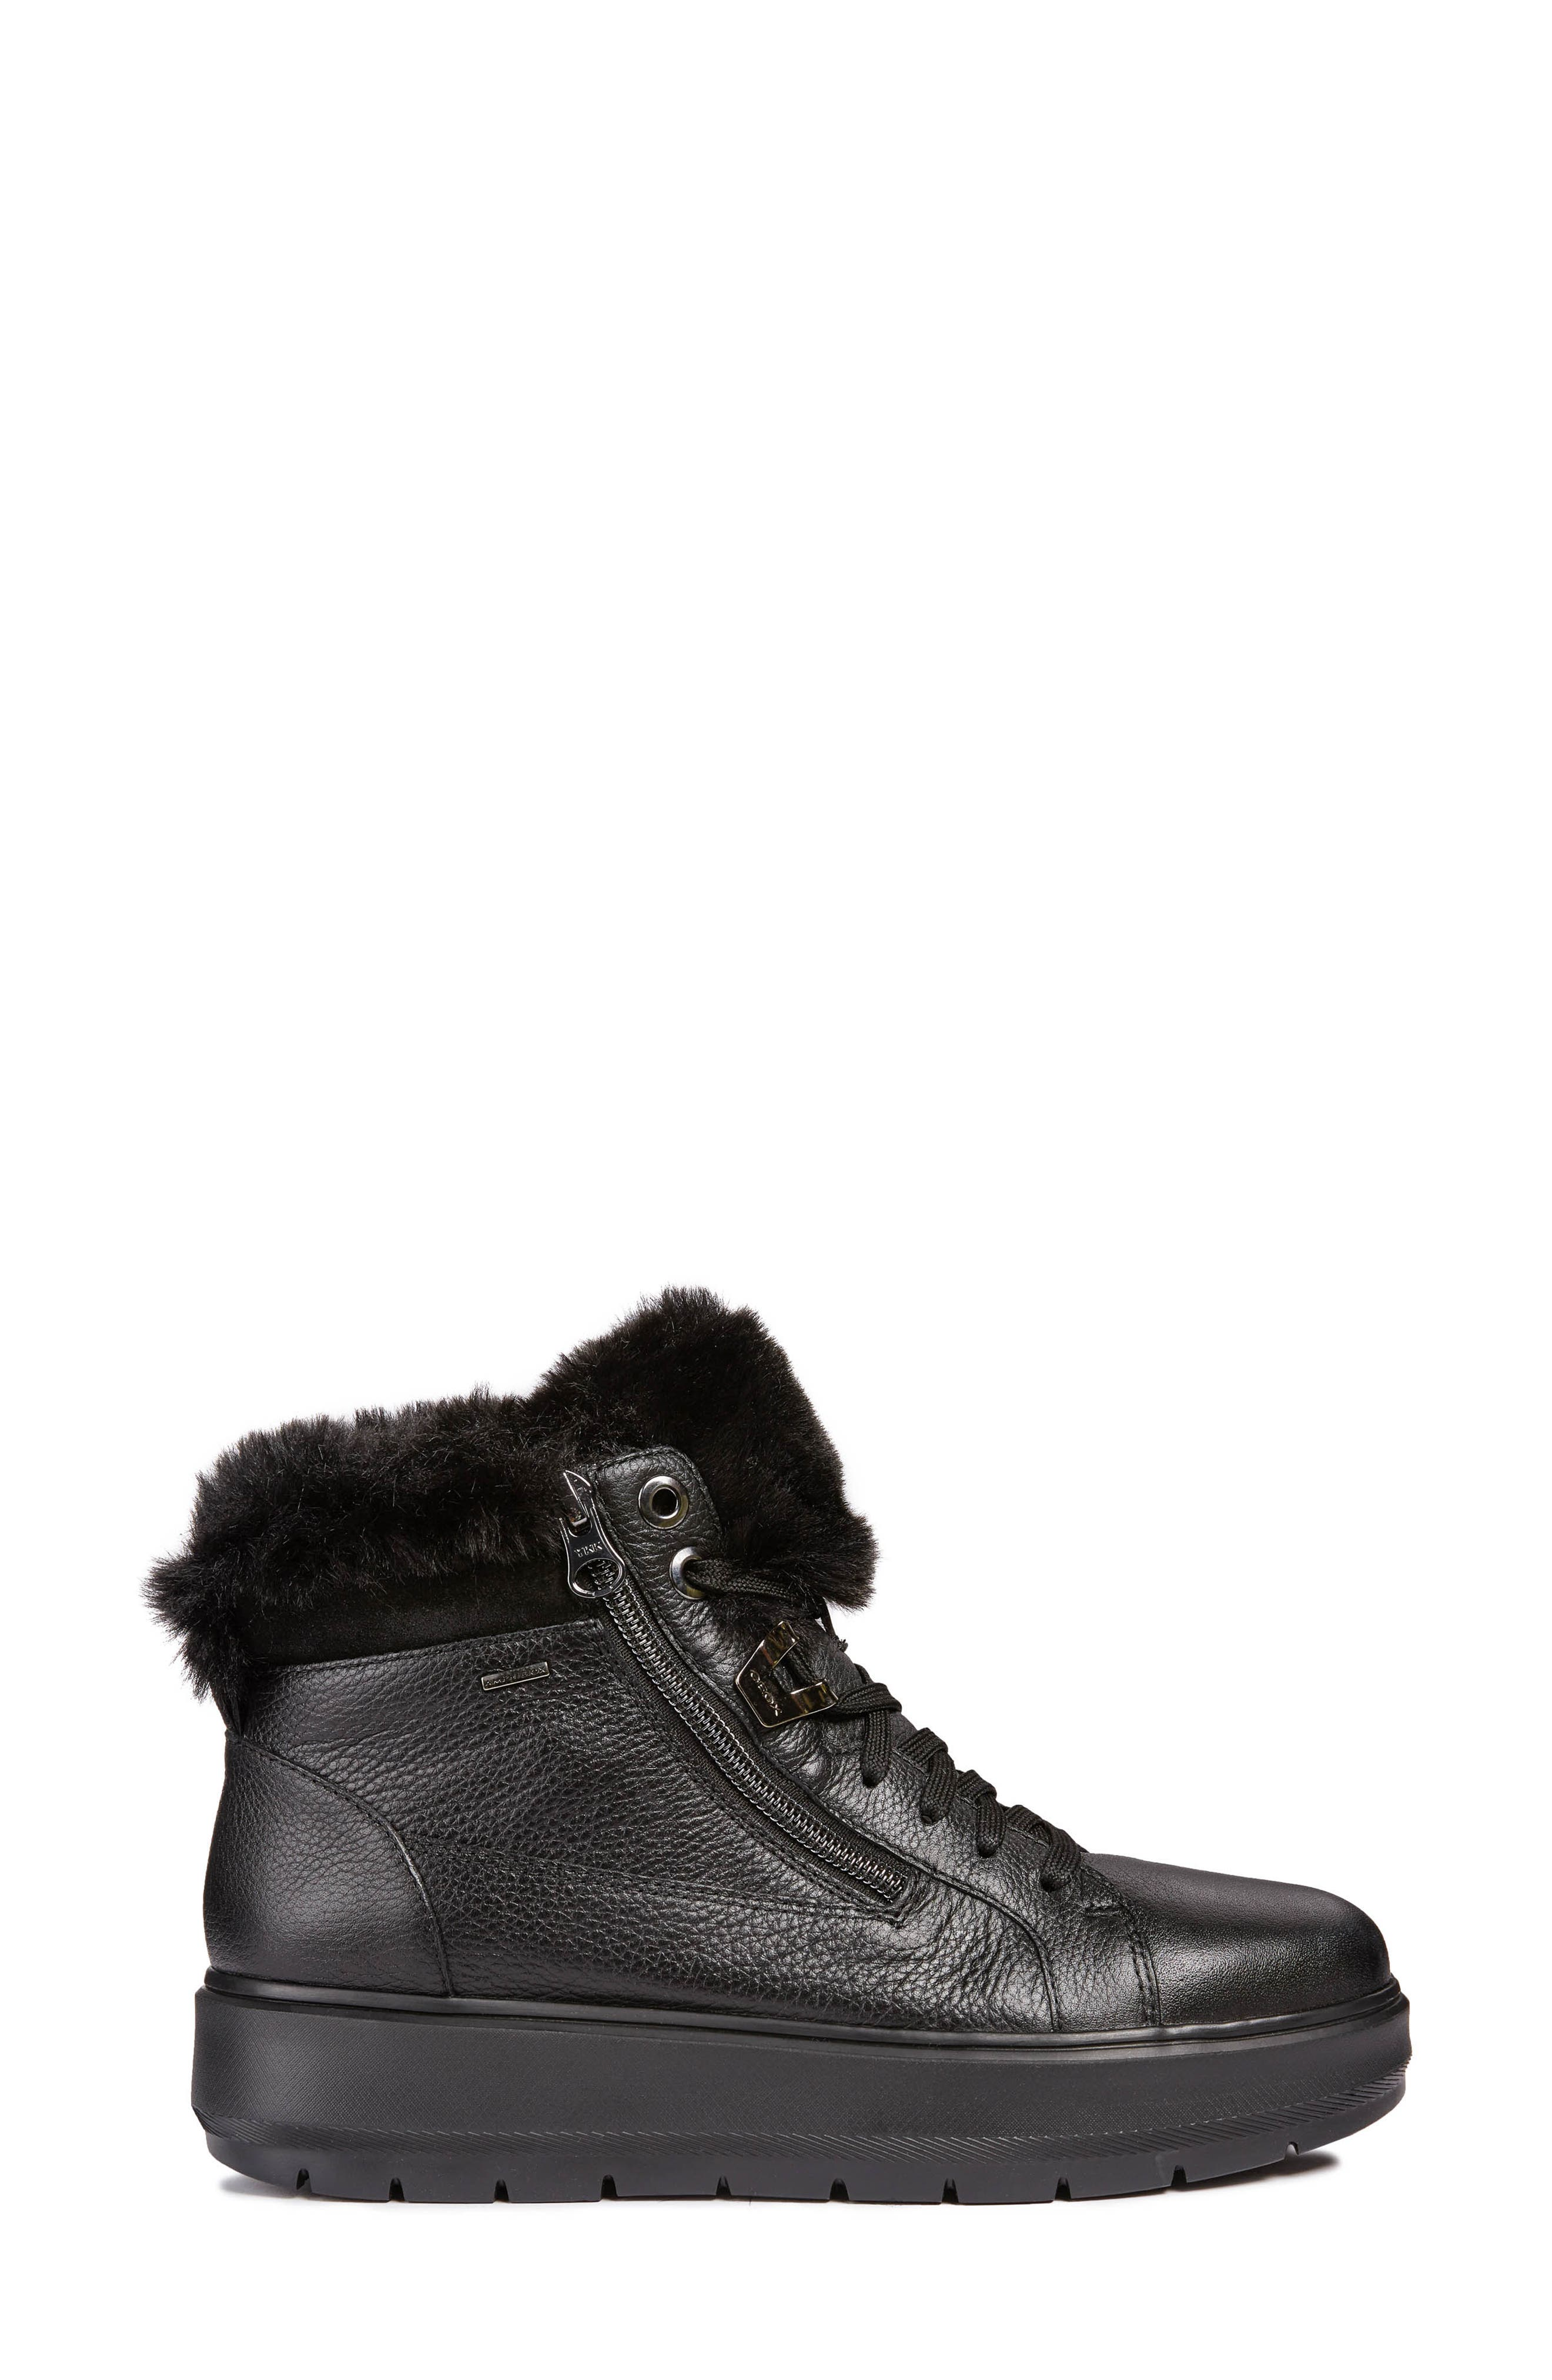 Kaula ABX Waterproof Faux-Fur Cuff Sneaker,                             Alternate thumbnail 3, color,                             BLACK LEATHER